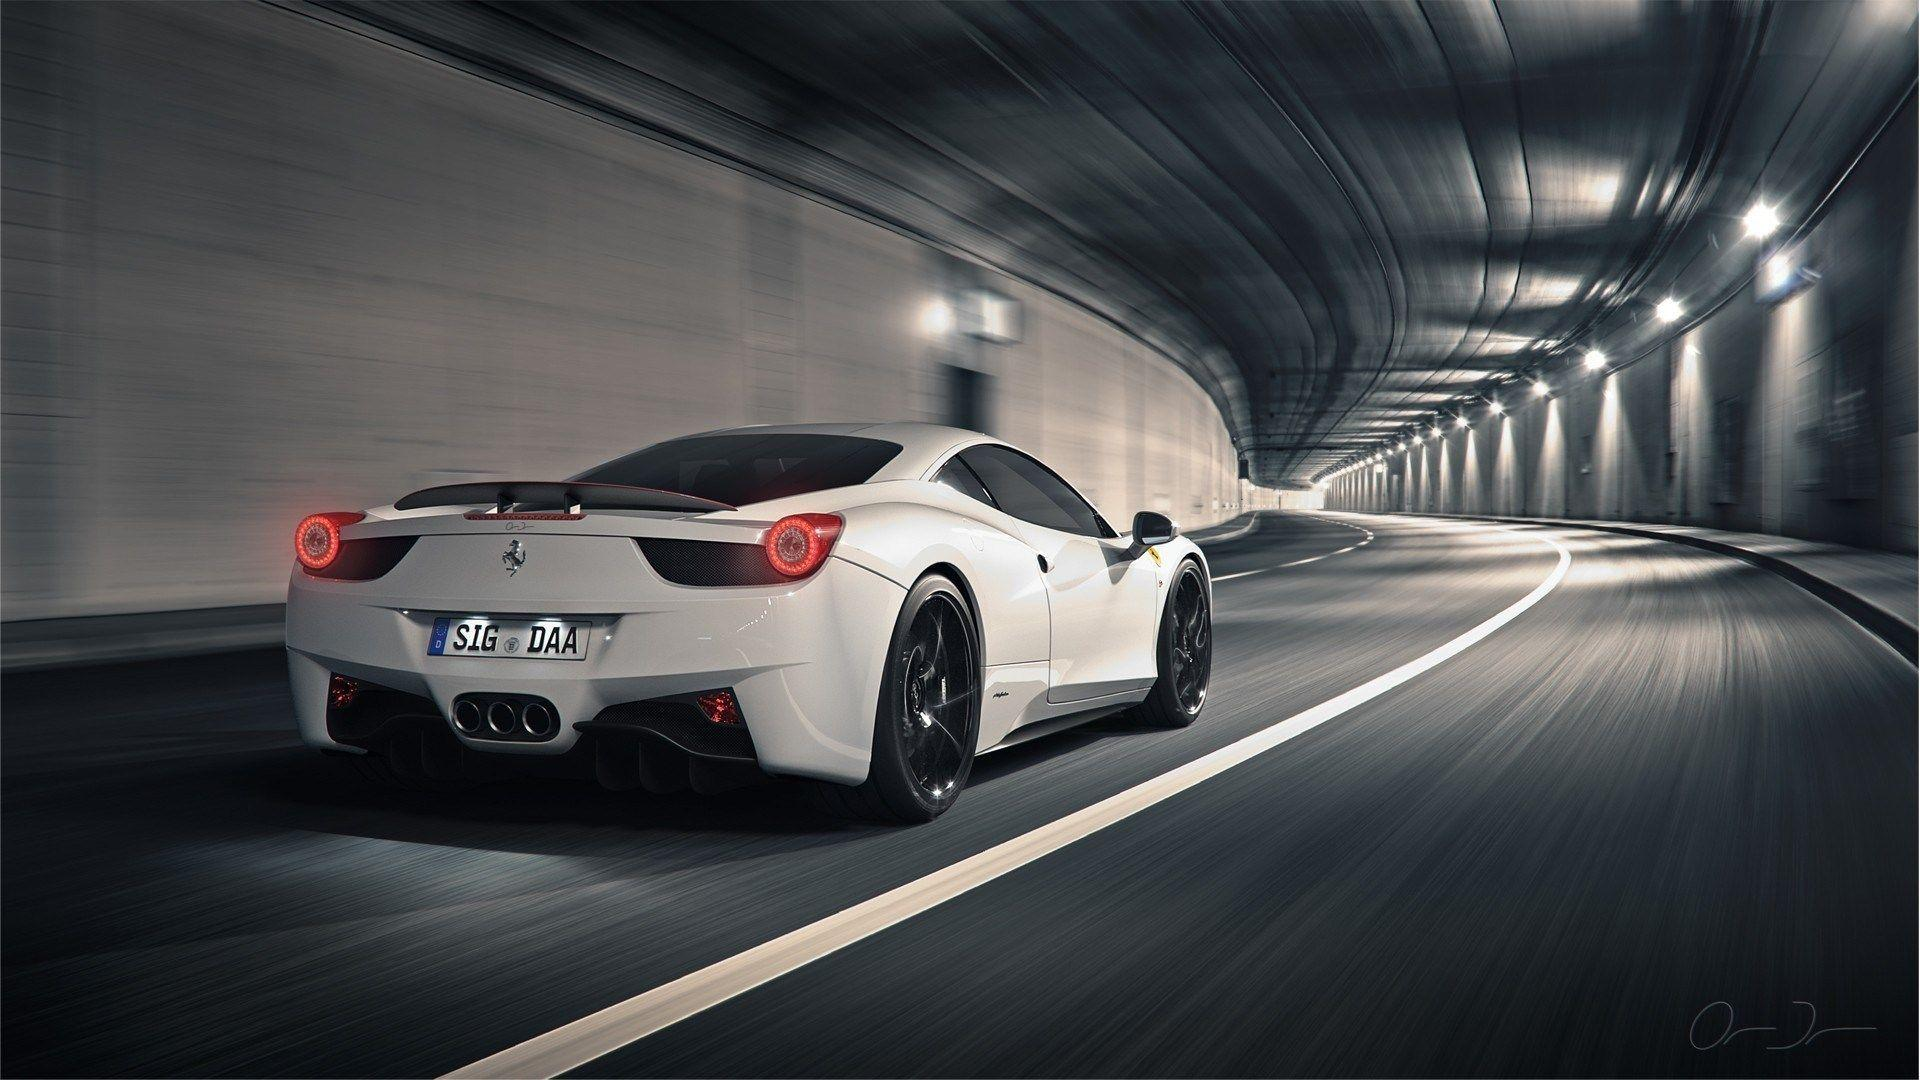 2015 Ferrari 458 Italia Wallpapers Wallpaper Cave